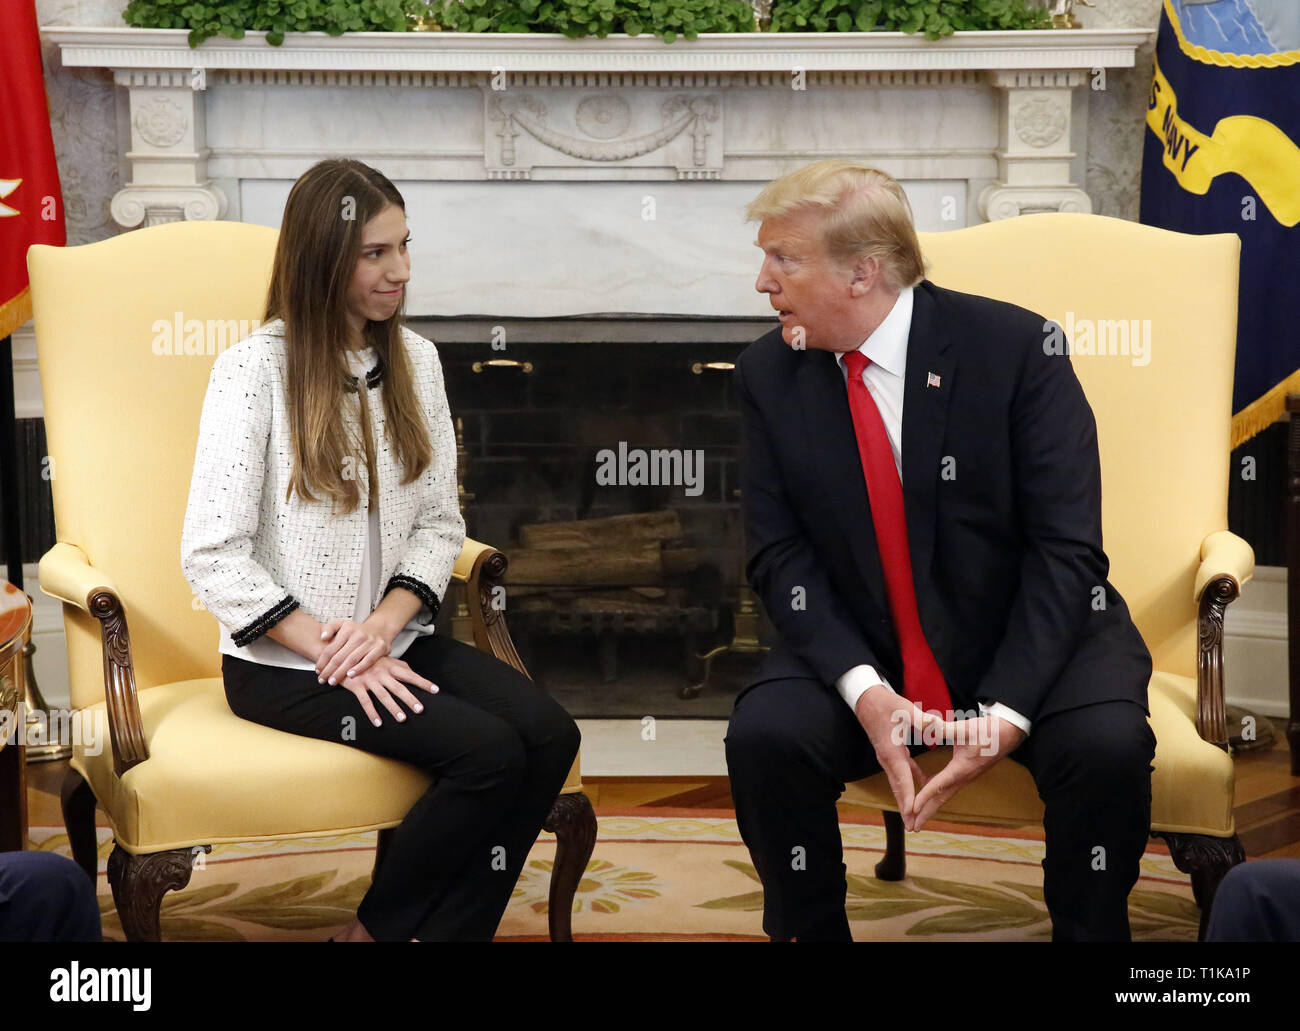 Washington, District of Columbia, USA. 27th Mar, 2019. United States President Donald J. Trump meets with Fabiana Rosales, wife of Venezuela's self-proclaimed interim president, Juan Guaido, in the Oval Office of the White House, in Washington, DC, on Wednesday, March 27, 2019 Credit: Martin H. Simon/CNP/ZUMA Wire/Alamy Live News Stock Photo